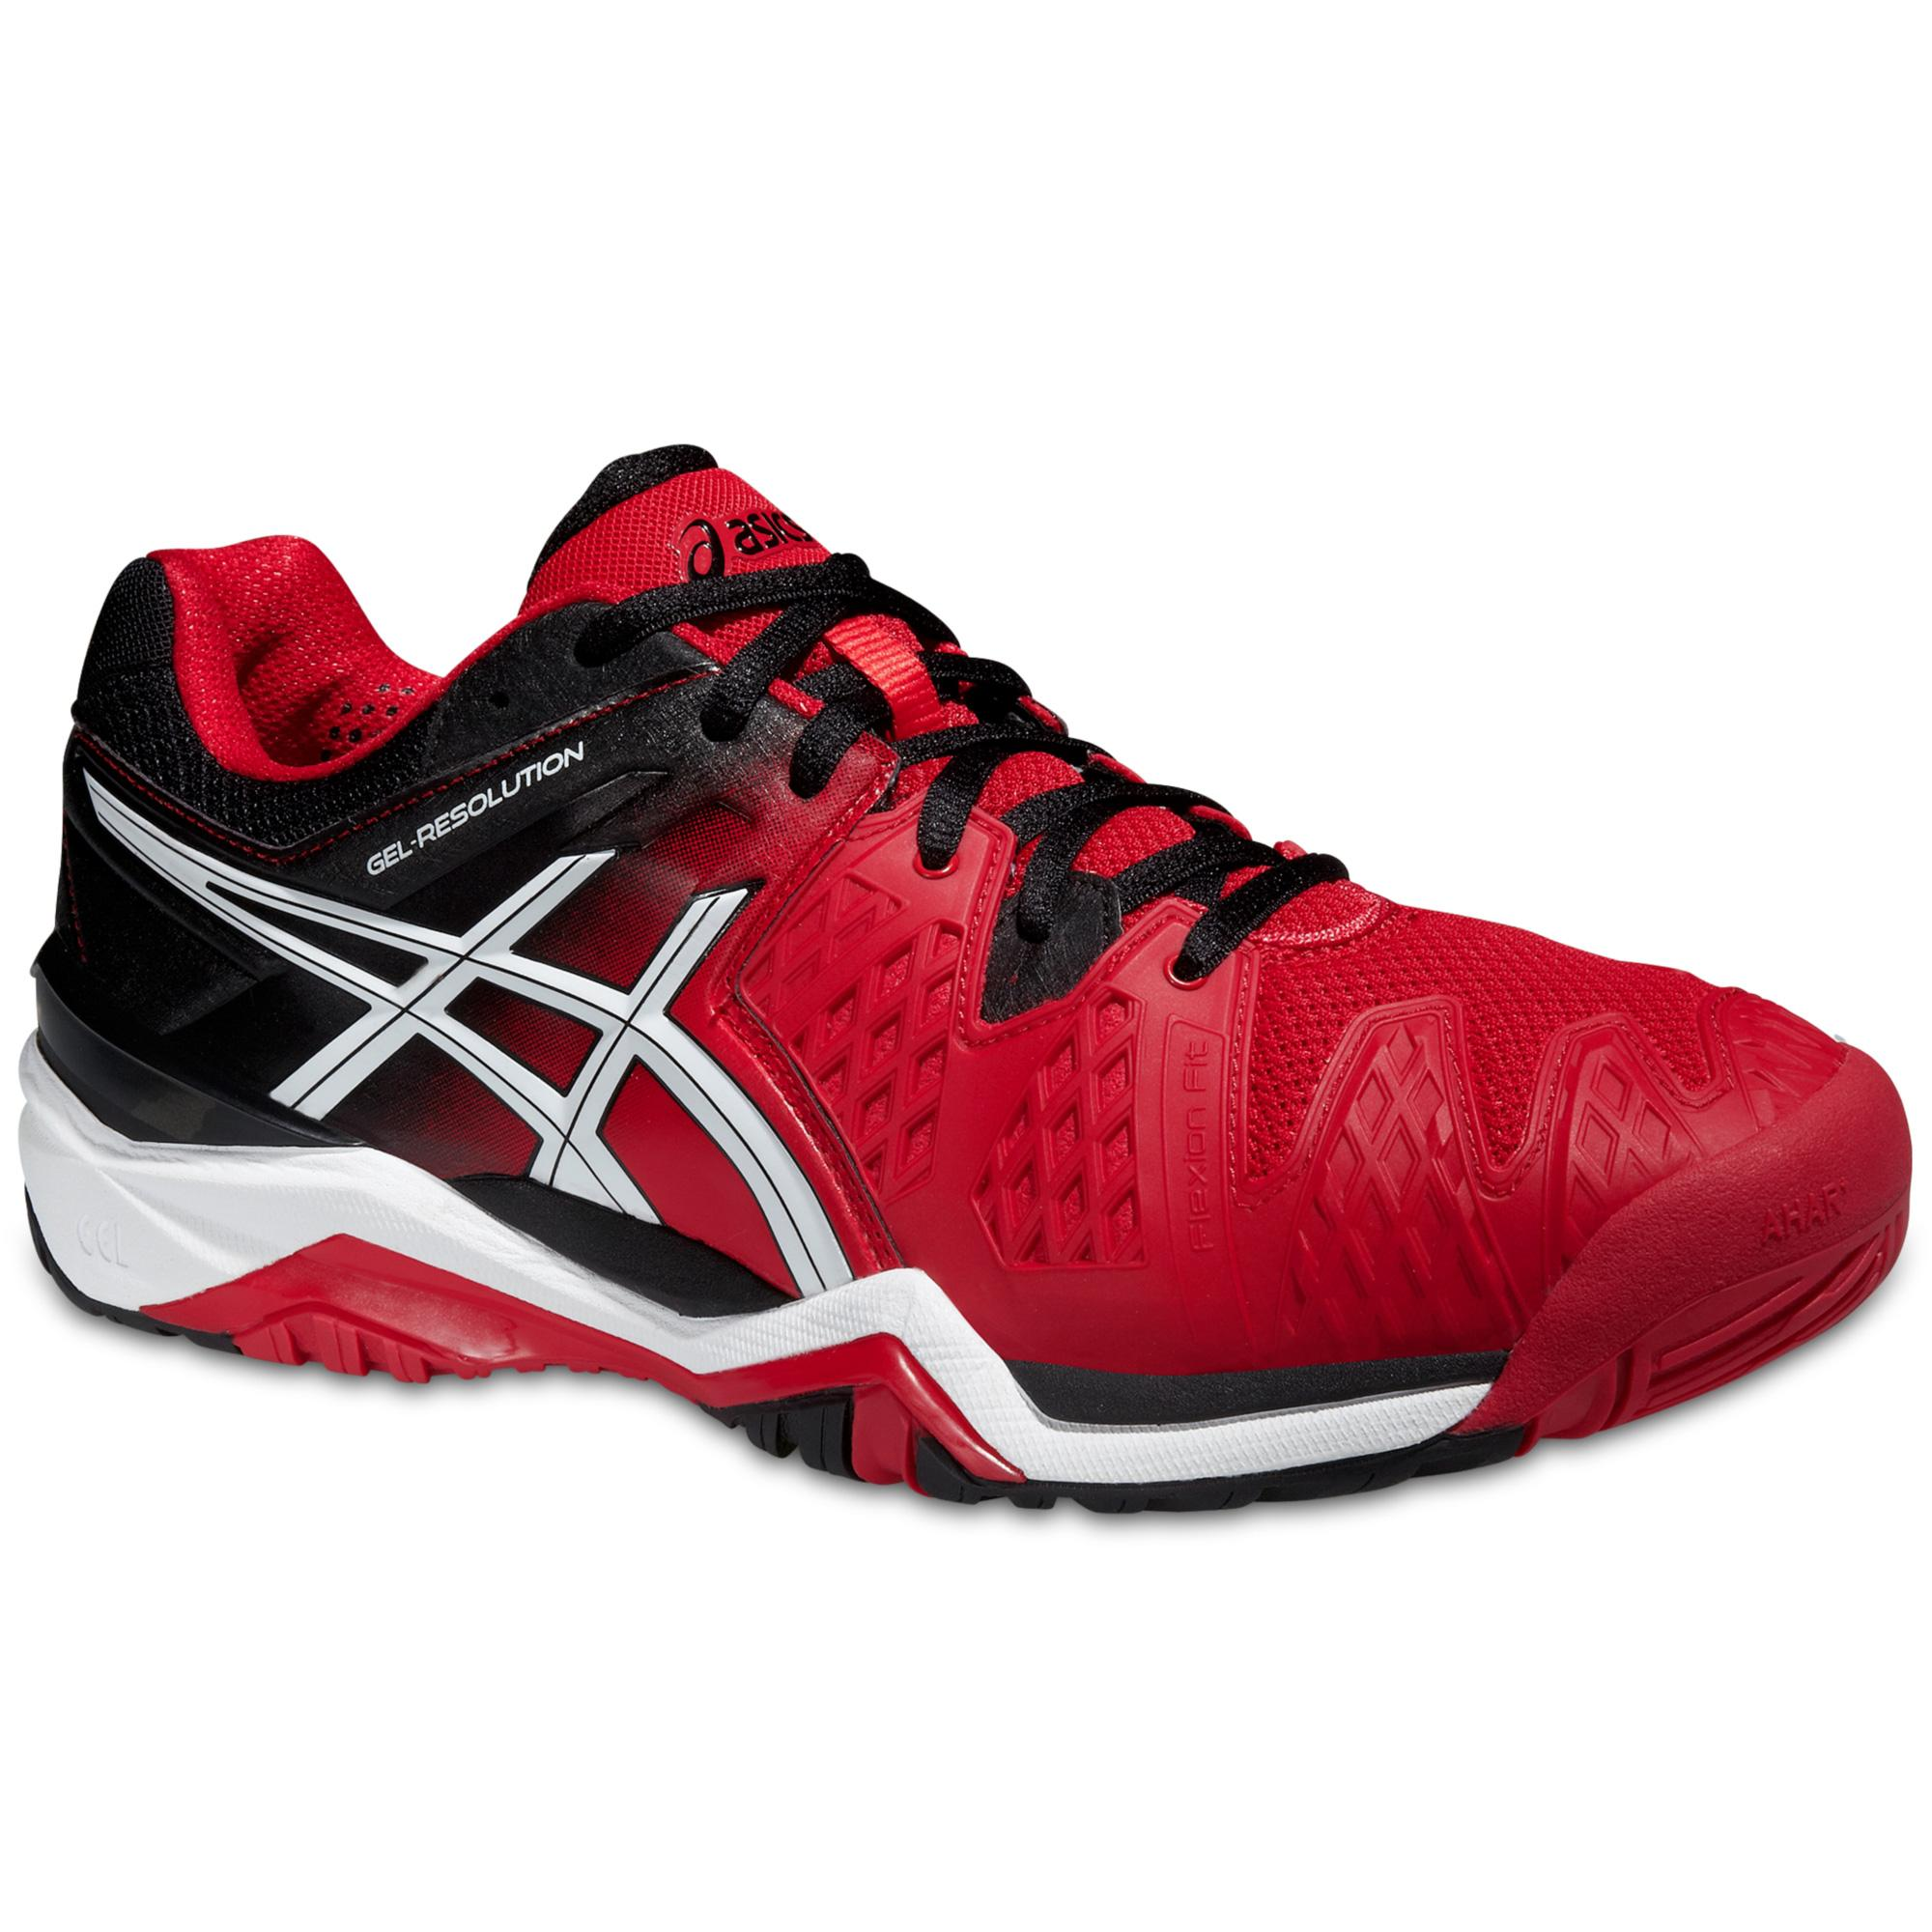 4ecf0783aae7 Asics Mens GEL-Resolution 6 Tennis Shoes - Fiery Red - Tennisnuts.com